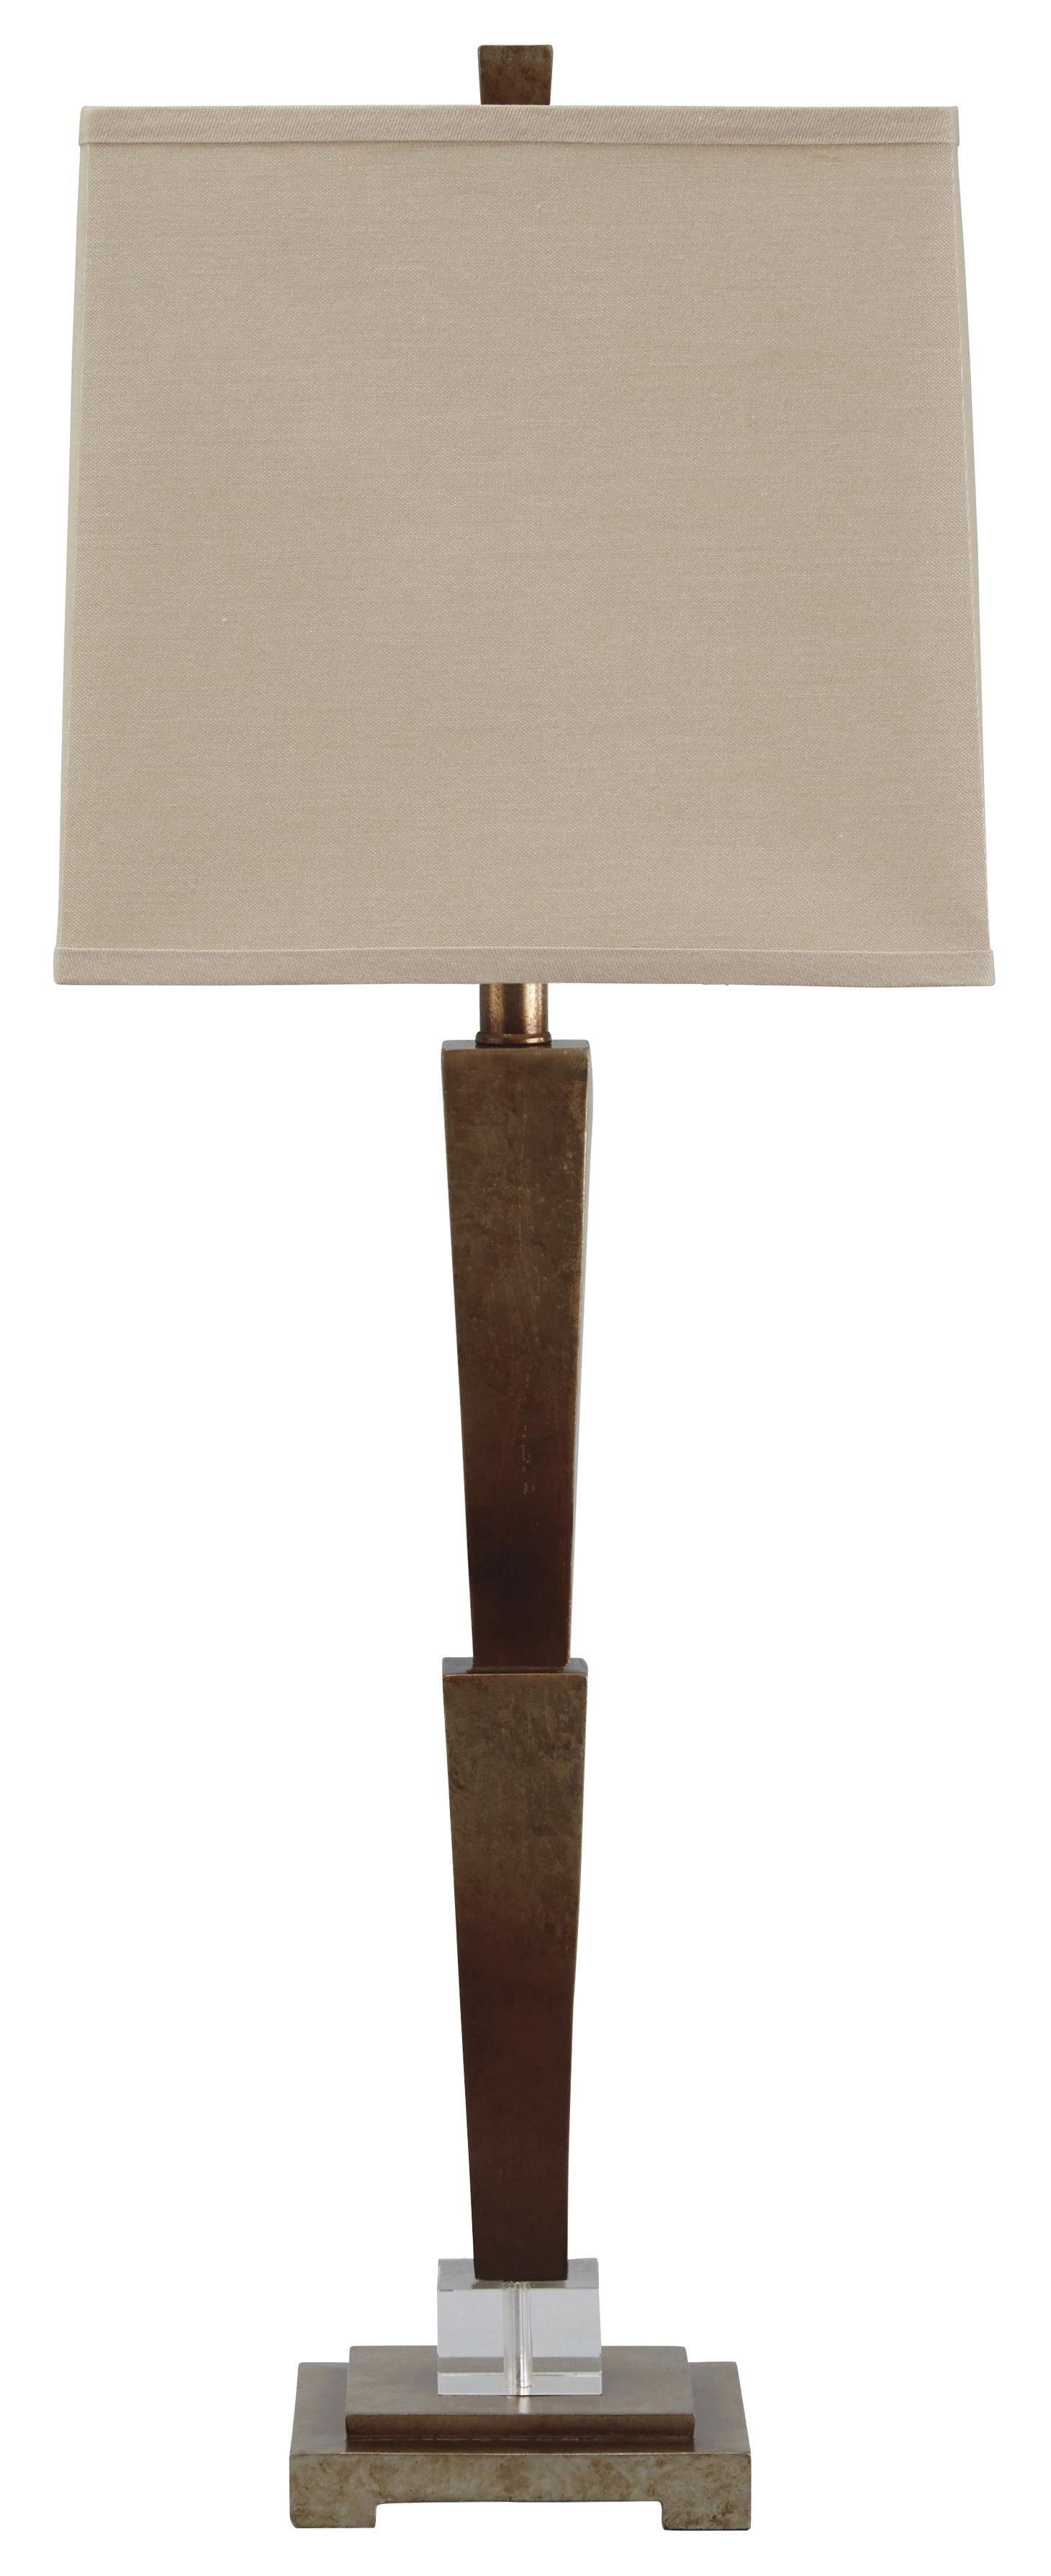 Signature Design by Ashley Lamps - Contemporary Malachy Poly Table Lamp - Item Number: L235004